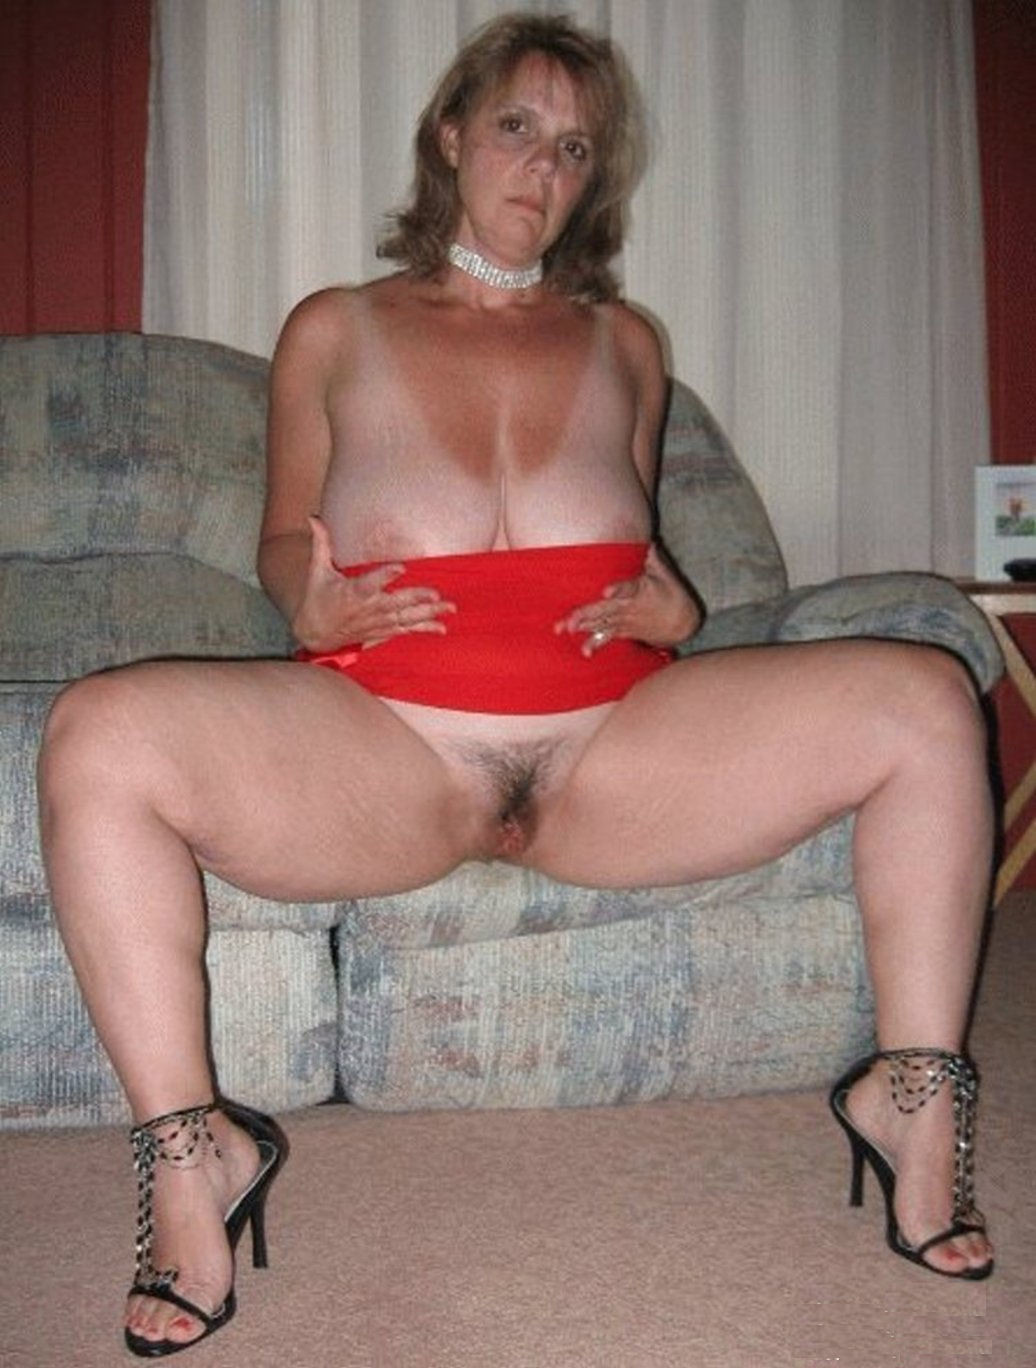 amateur mature pussy pics pics gallery - christianlouboutinfr